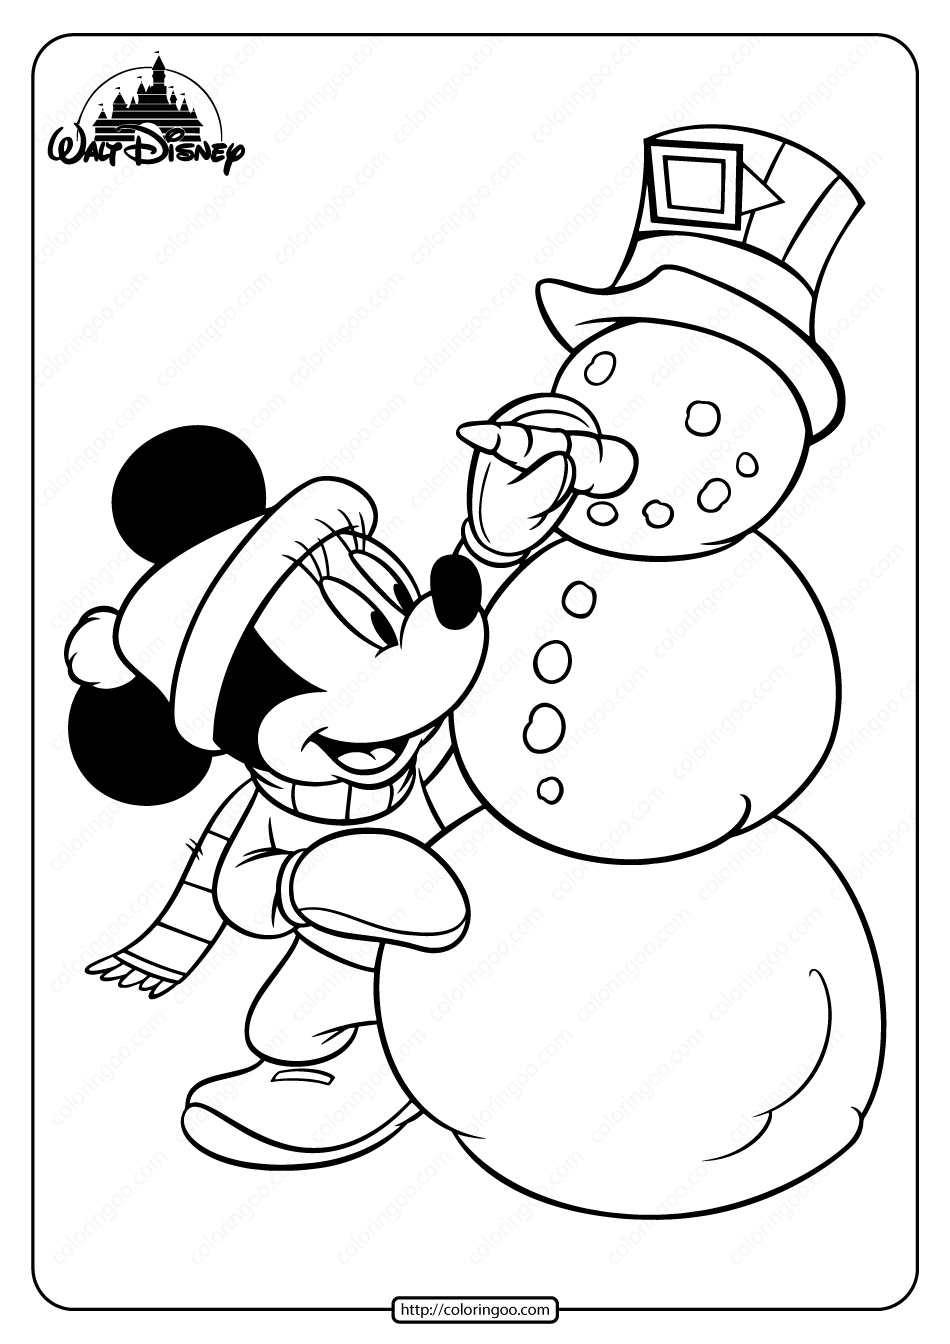 Printable Minnie Mouse Winter Fun Coloring Page